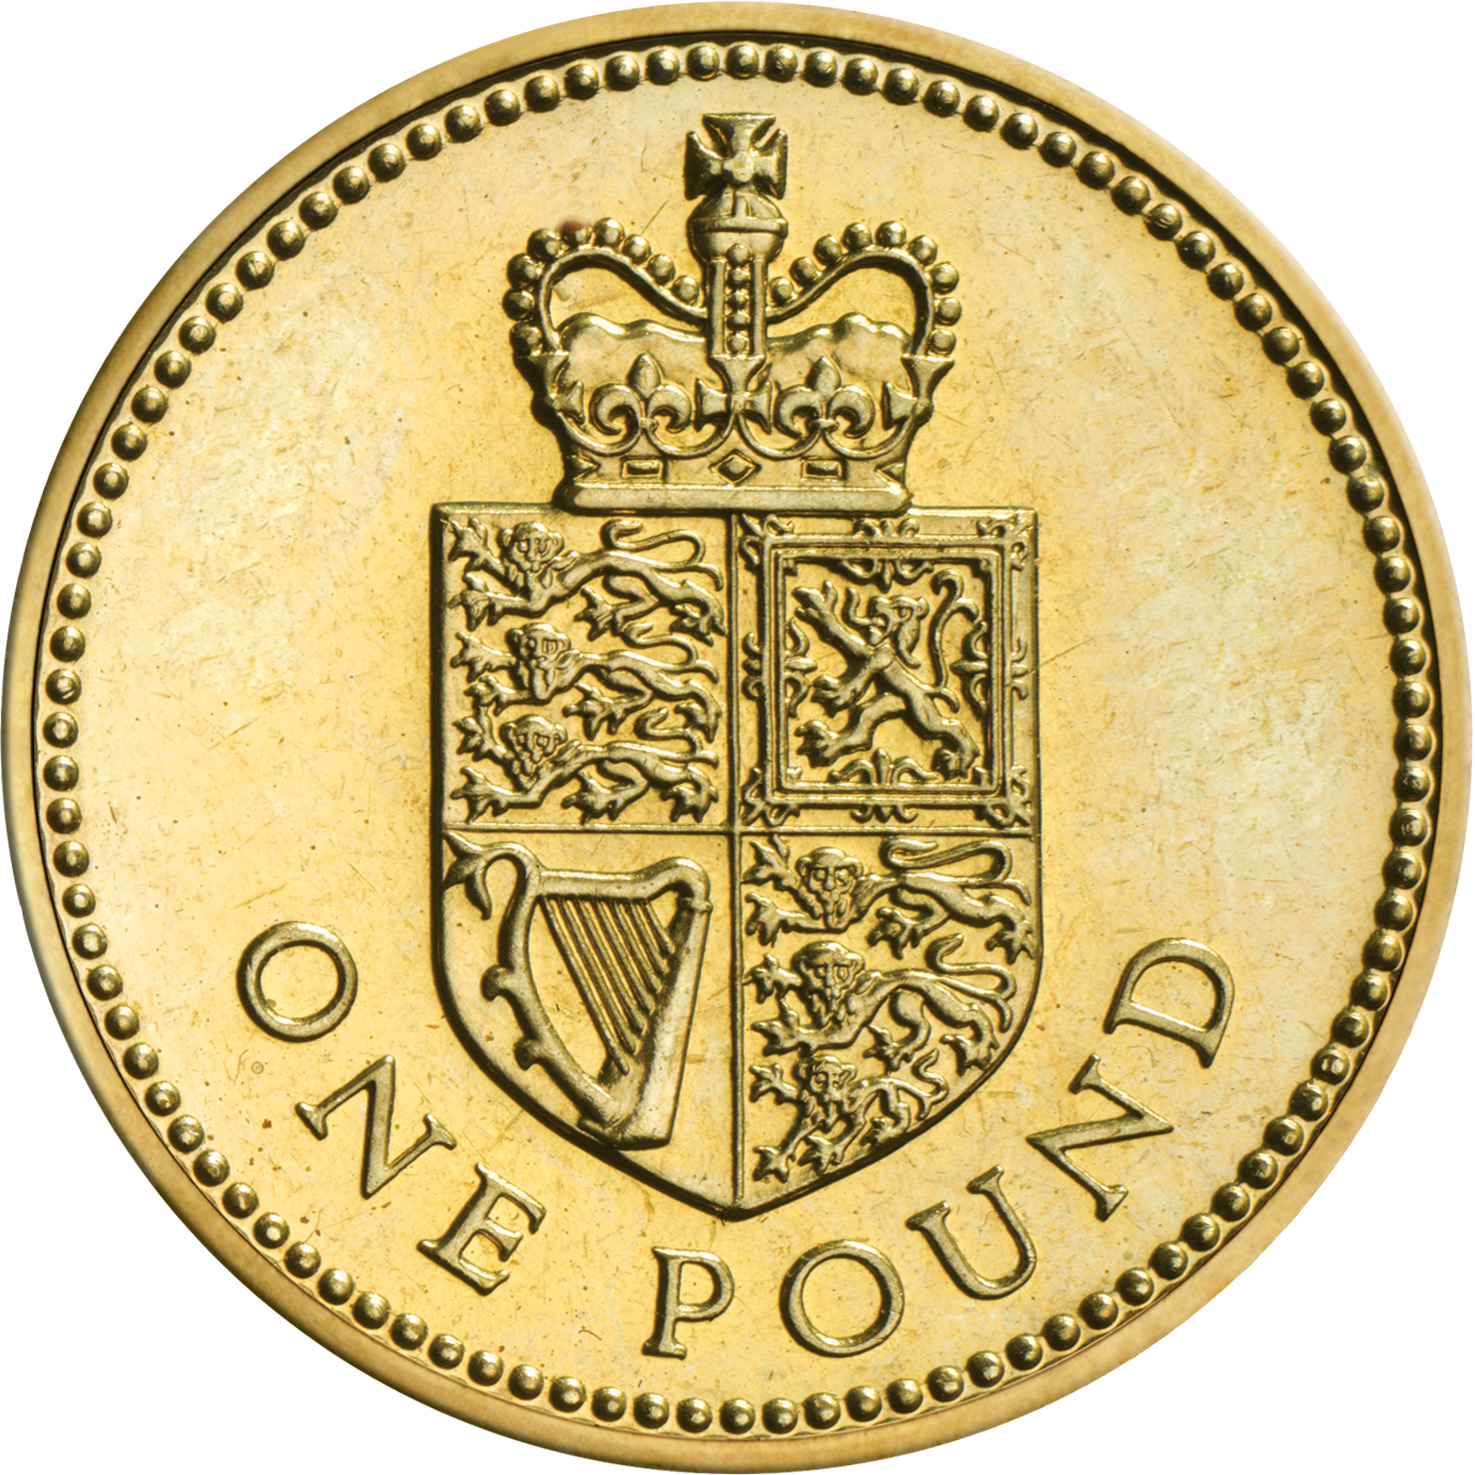 One Pound 1988 Shield: Photo 1988 One Pound Coin